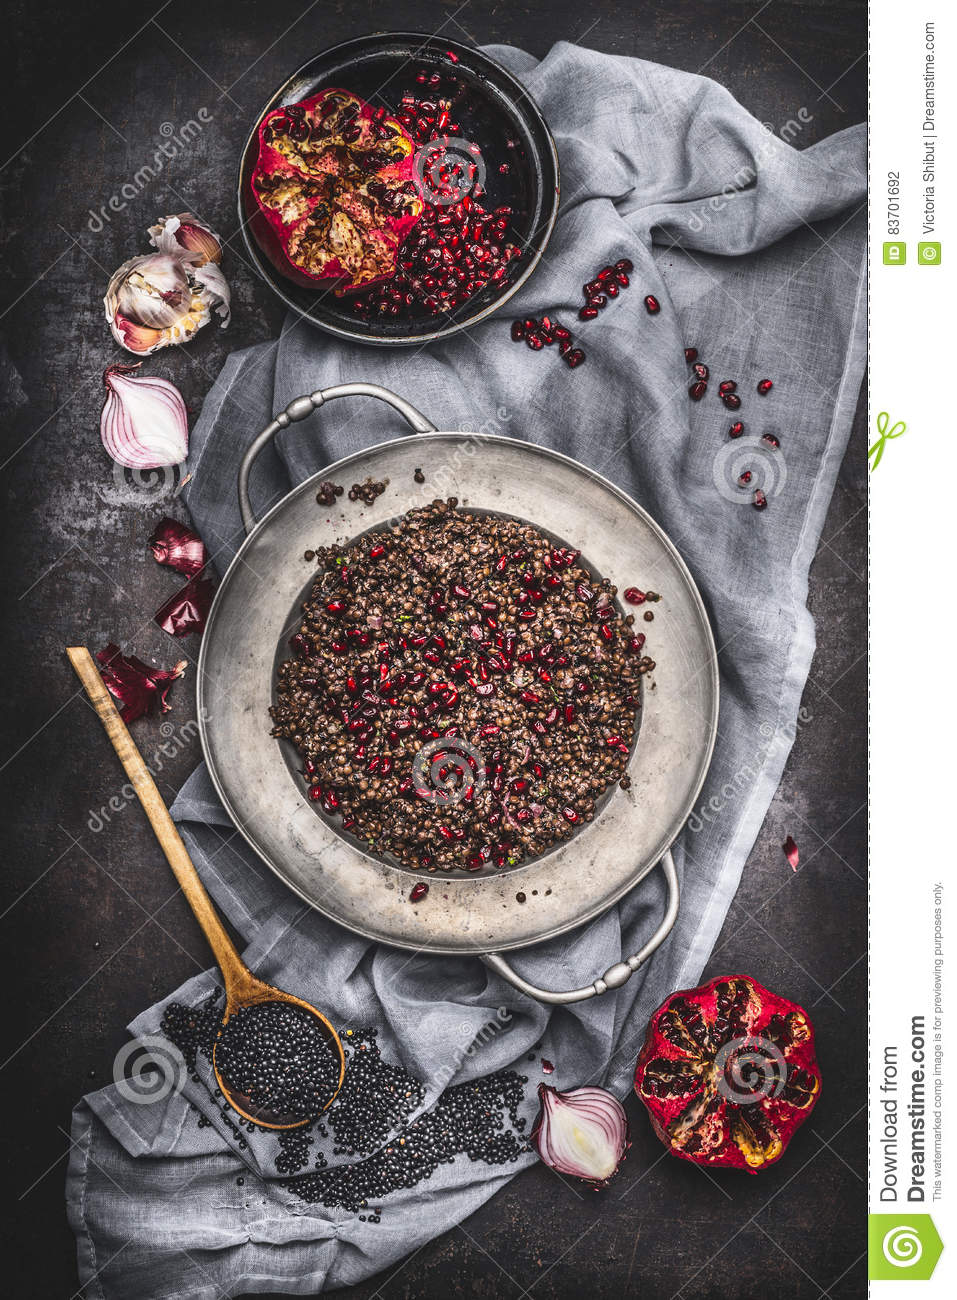 Top View Of Healthy Vegetarian Black Lentil Salad With Pomegranate And Cooking Ingredients On Dark Rustic Background With Napkin. Stock Photo